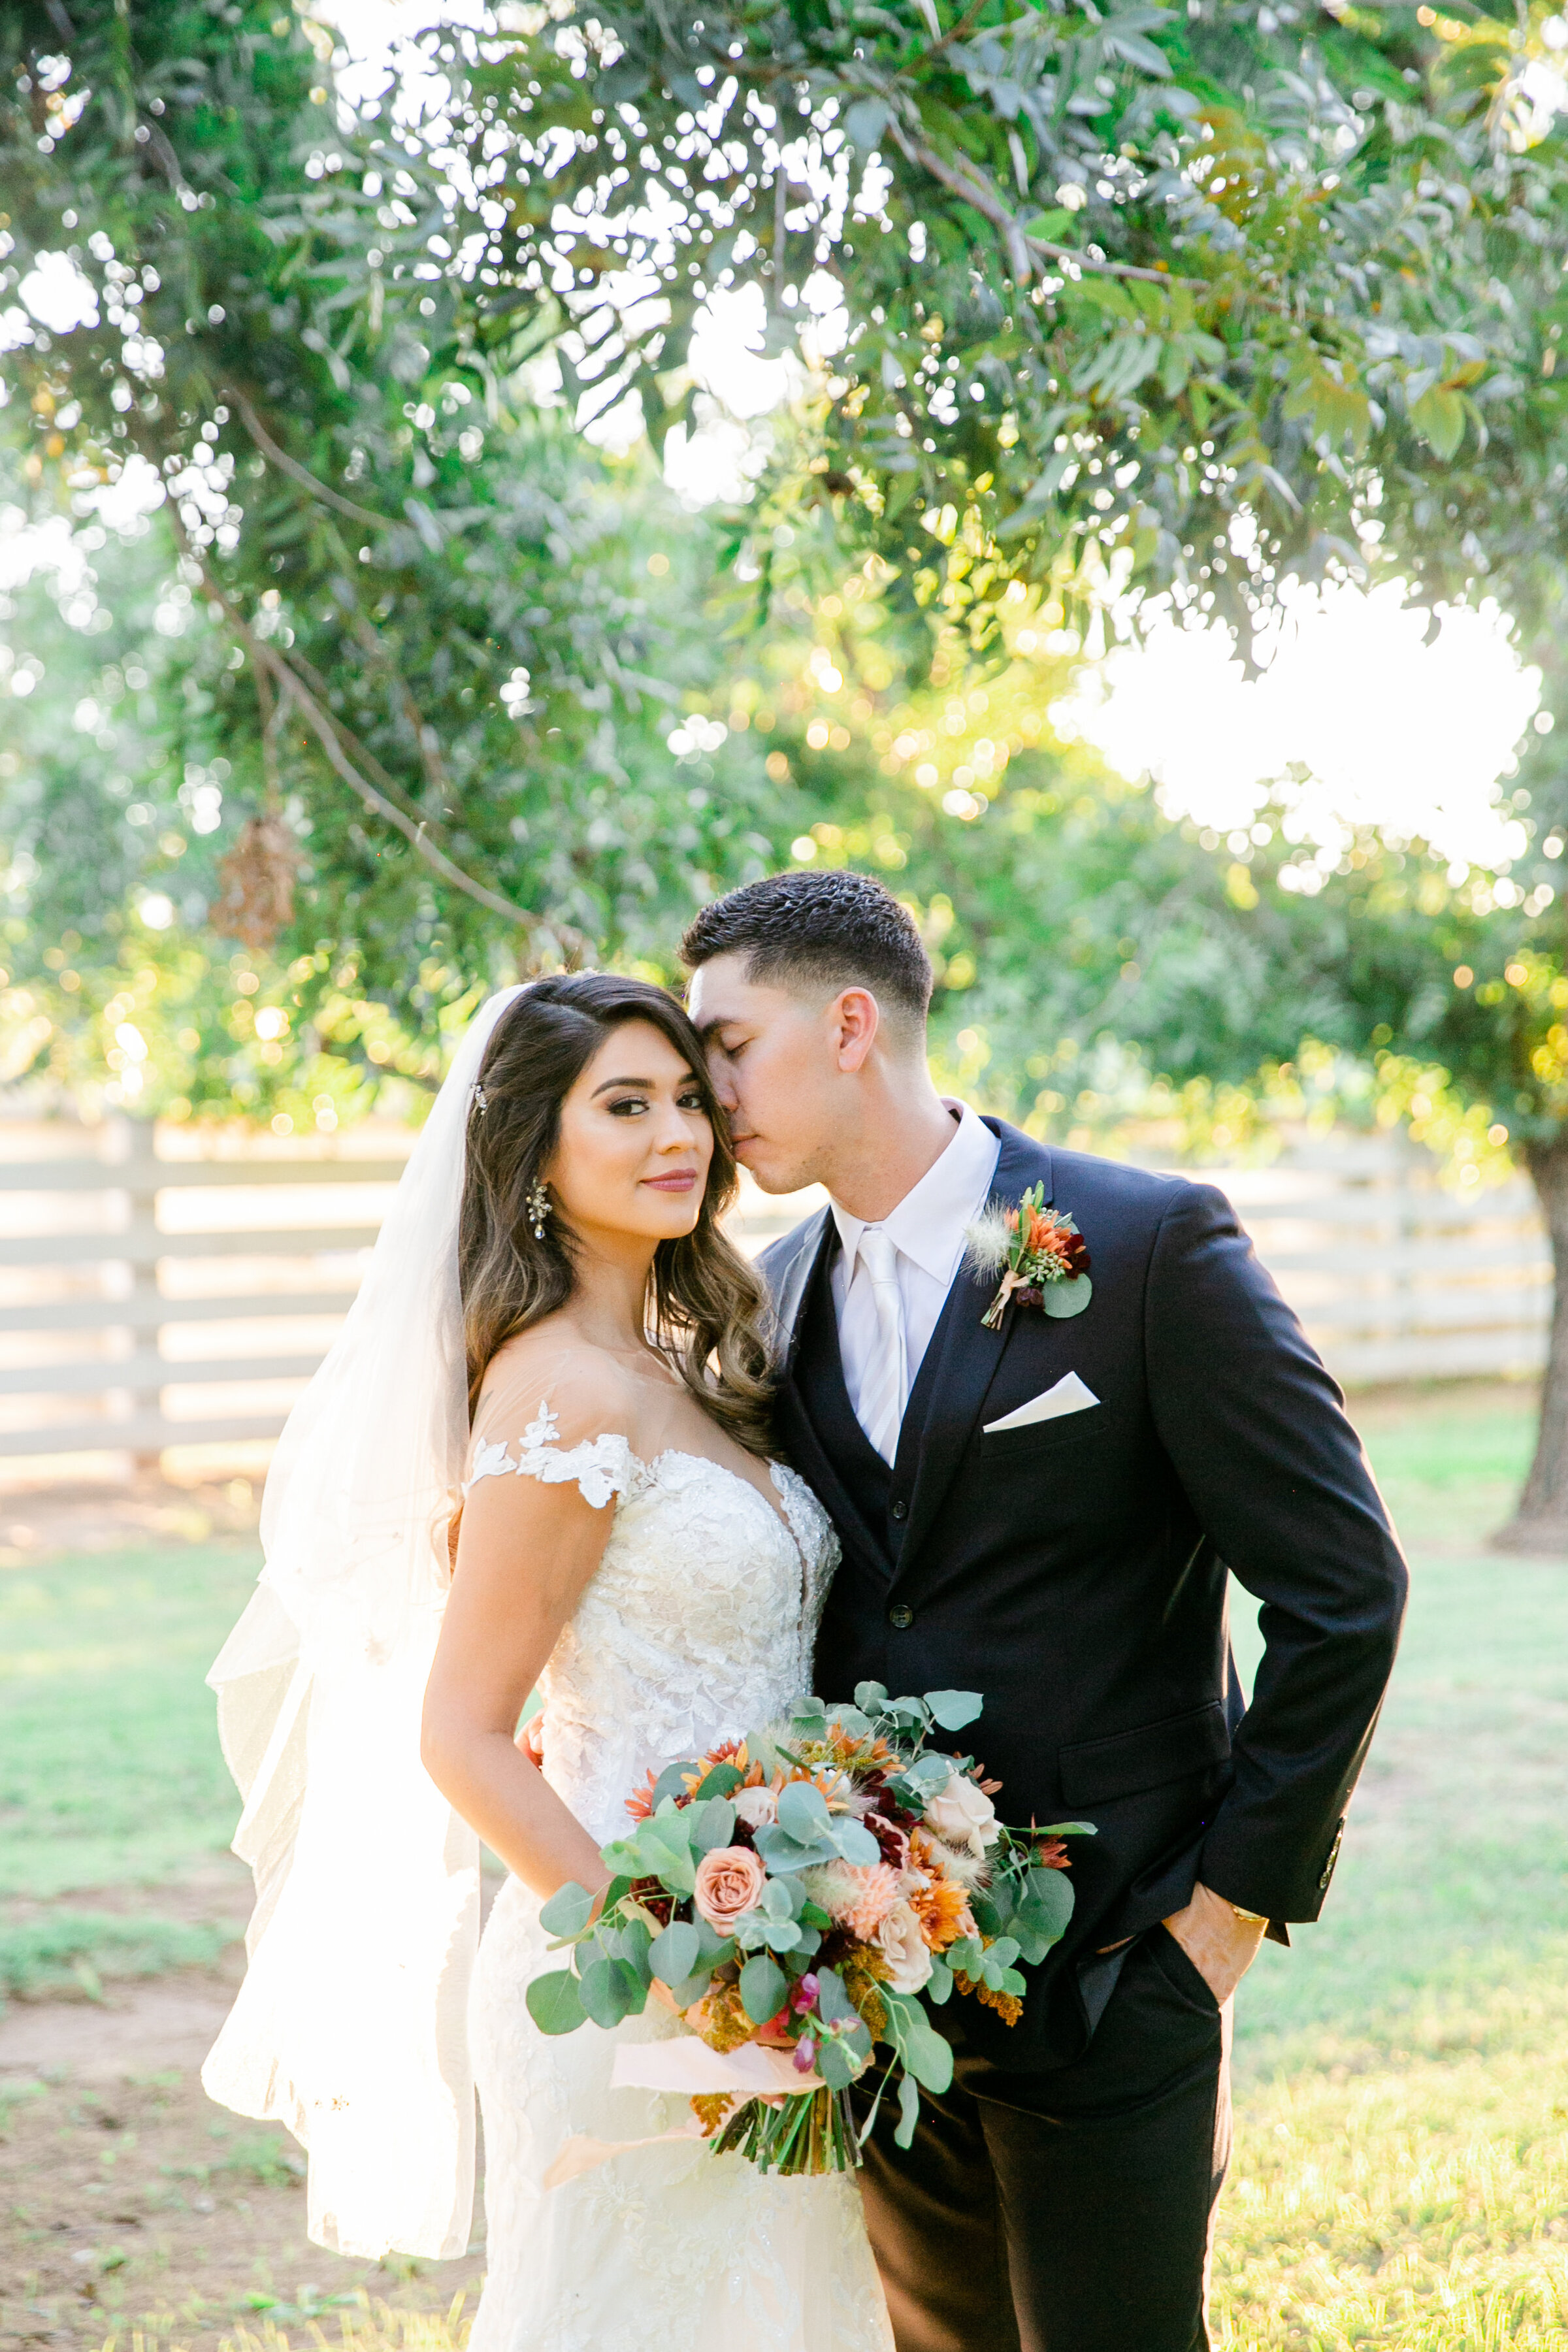 Karlie Colleen Photography - Phoenix Arizona - Farm At South Mountain Venue - Vanessa & Robert-554